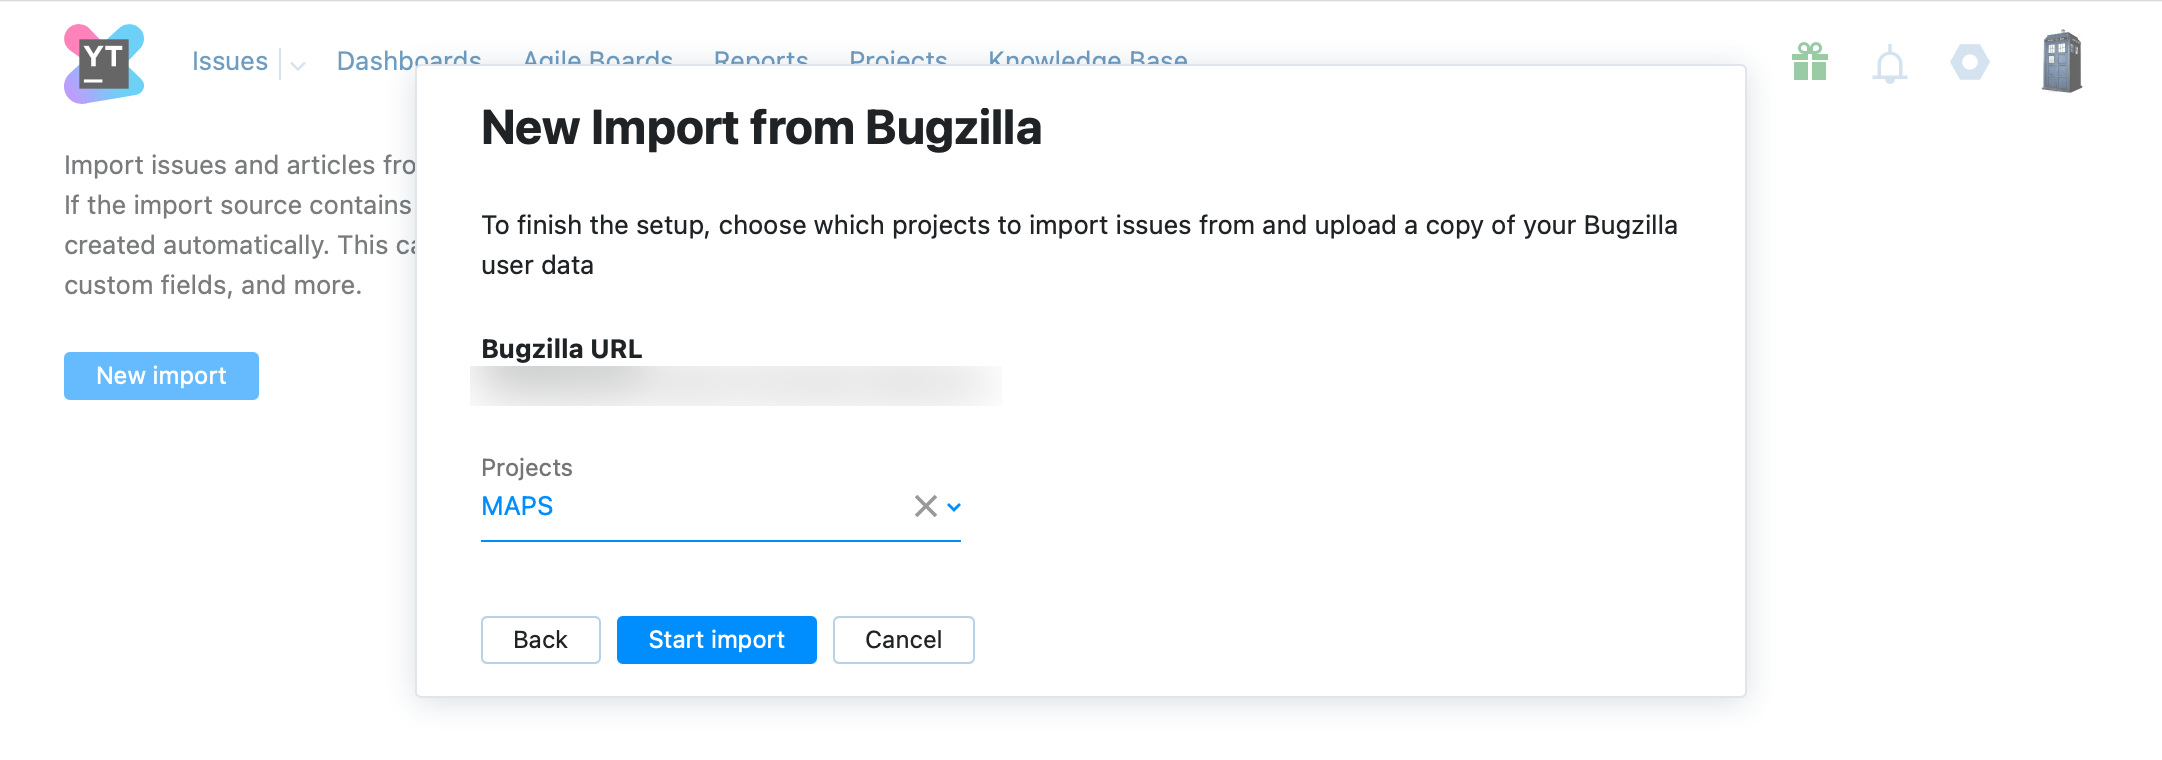 Optionally, select specific projects to import.